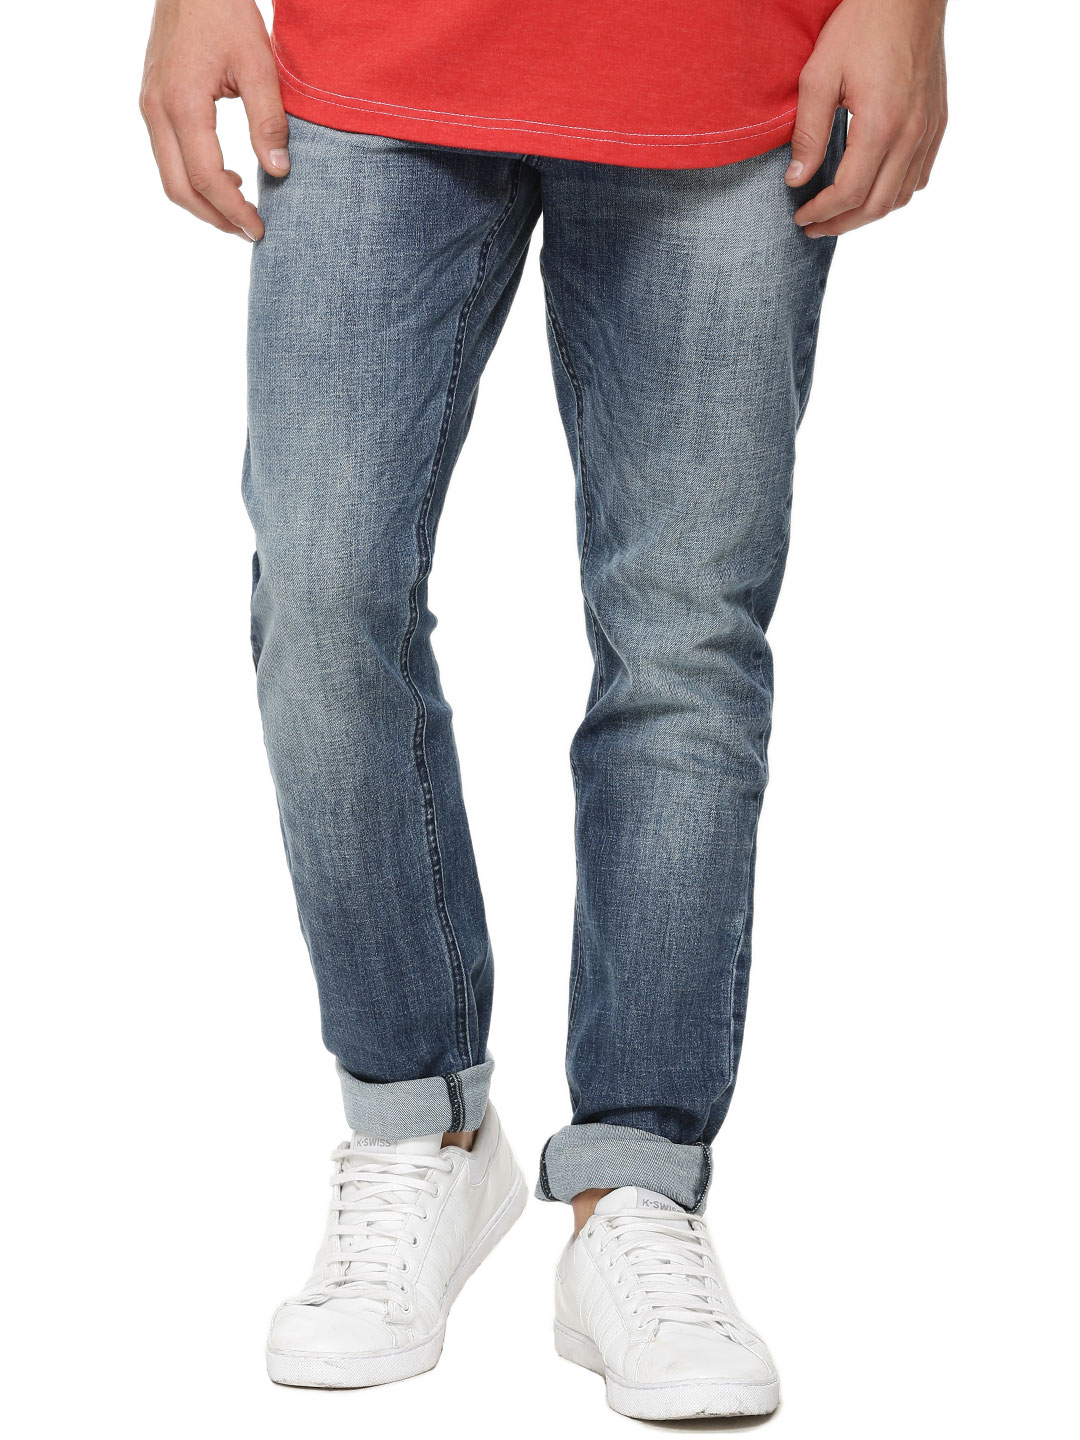 X.O.Y.O Blue Light Wash Slim Jeans With Whiskers 1